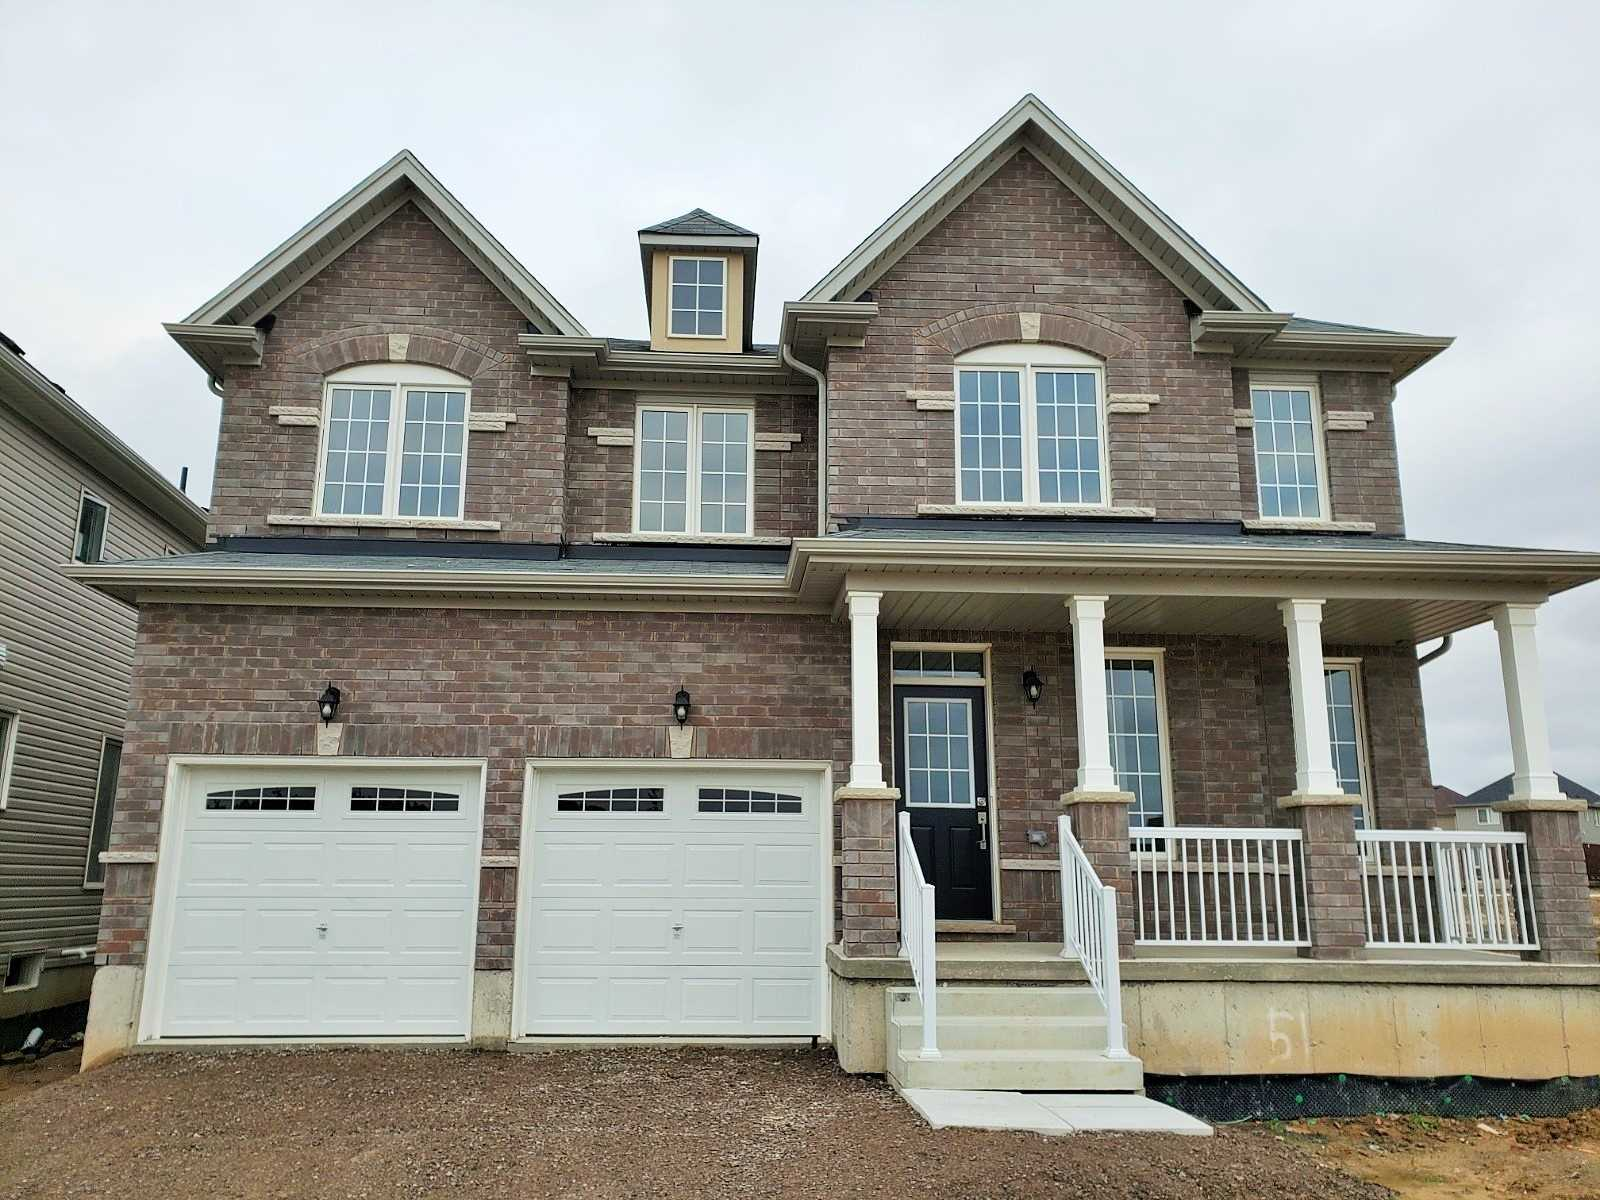 Detached house For Lease In Brantford - 103 Powell Rd, Brantford, Ontario, Canada N3T 0P9 , 4 Bedrooms Bedrooms, ,4 BathroomsBathrooms,Detached,For Lease,Powell